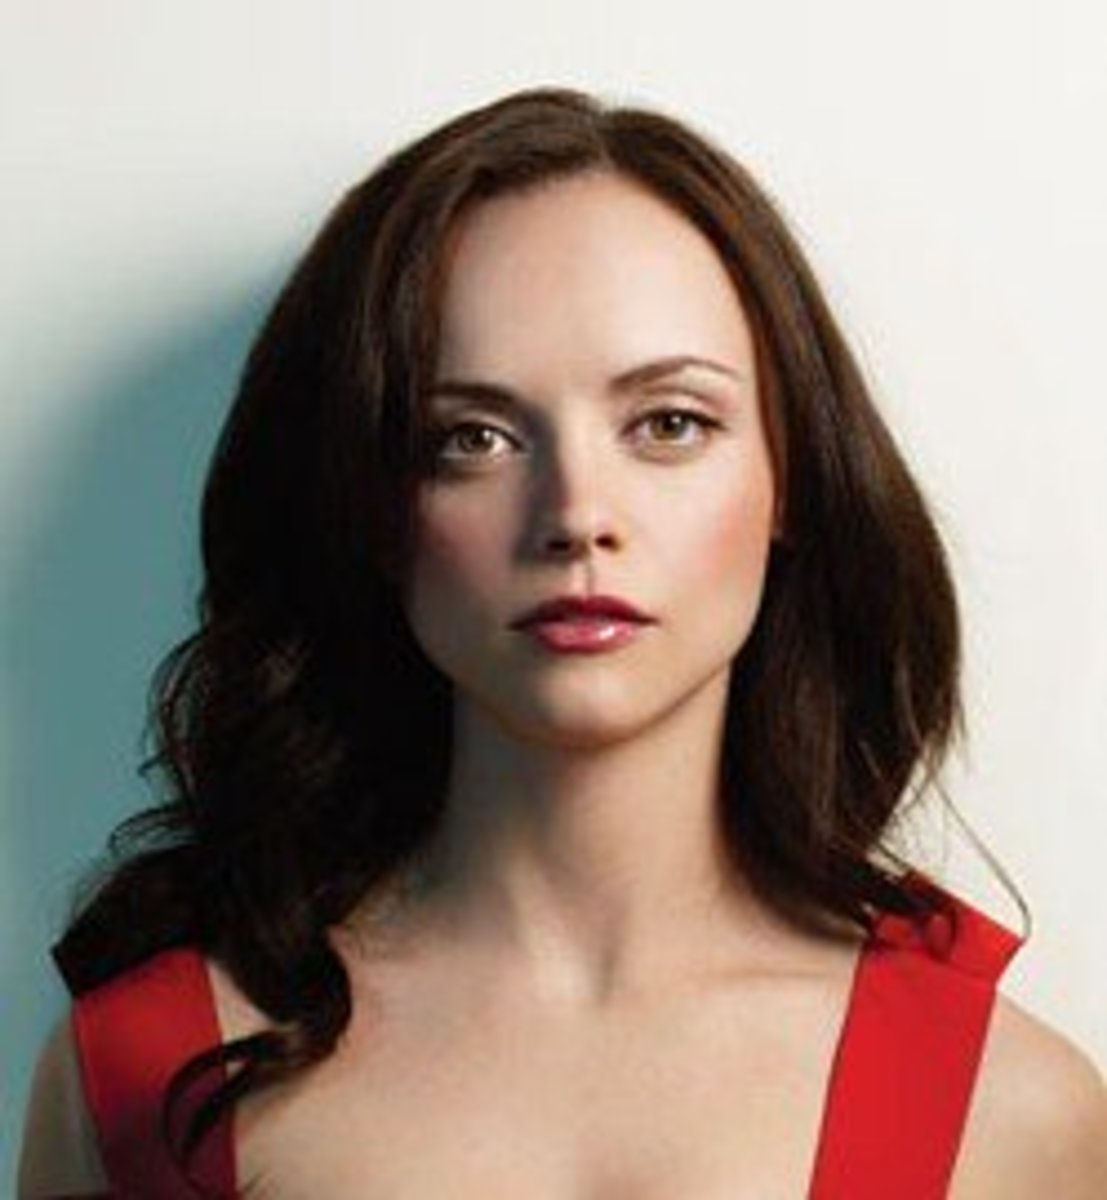 Christina Ricci. Makeup for Brunettes with Brown Eyes and Pale Skin